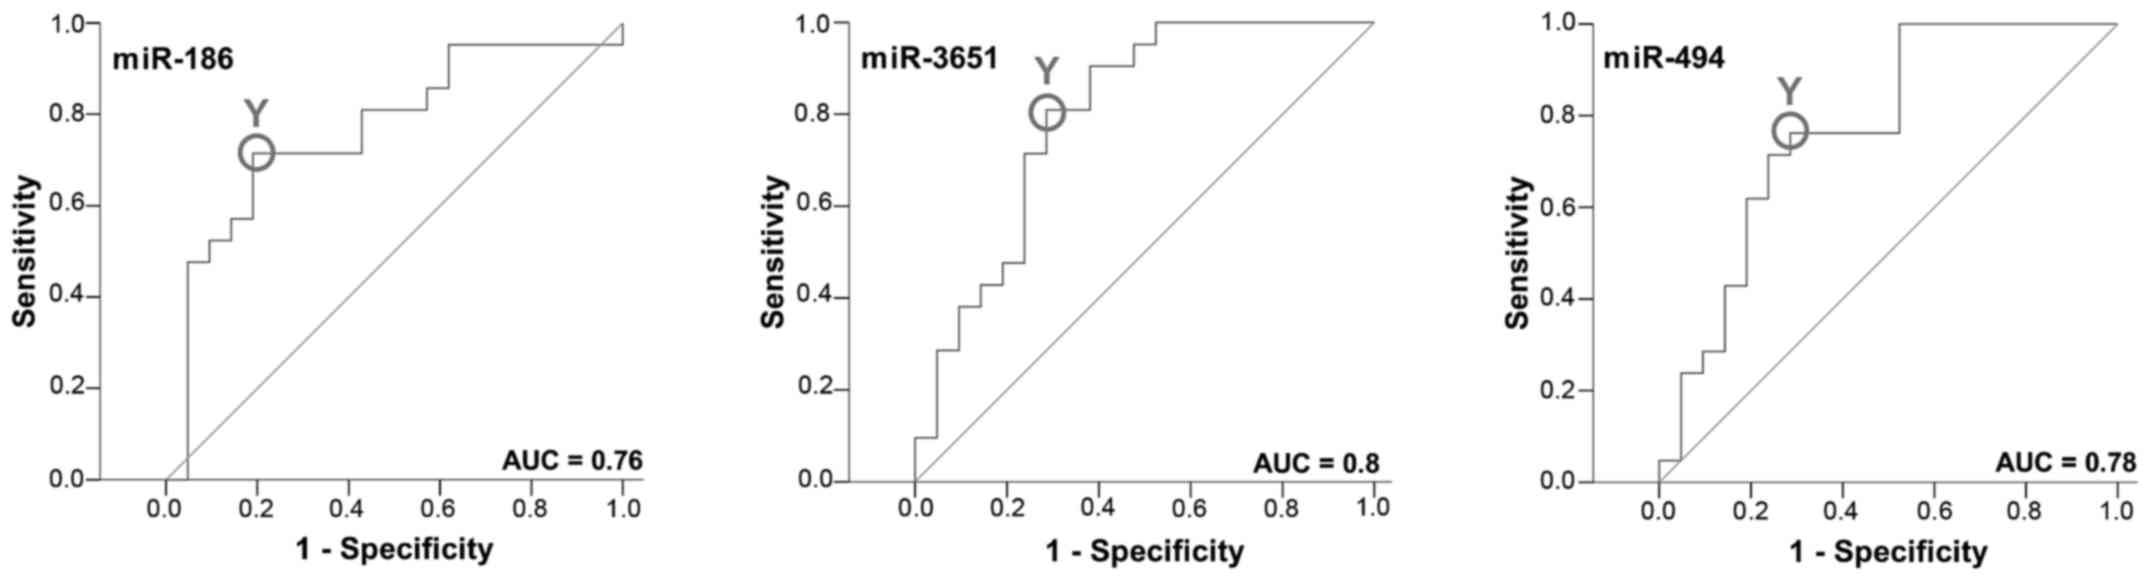 Prognostic significance of altered mirna expression in whole blood the diagrams plot the sensitivity true positive rate vs 1 specificity false positive rate over all possible ct values the auc values indicate that ccuart Images